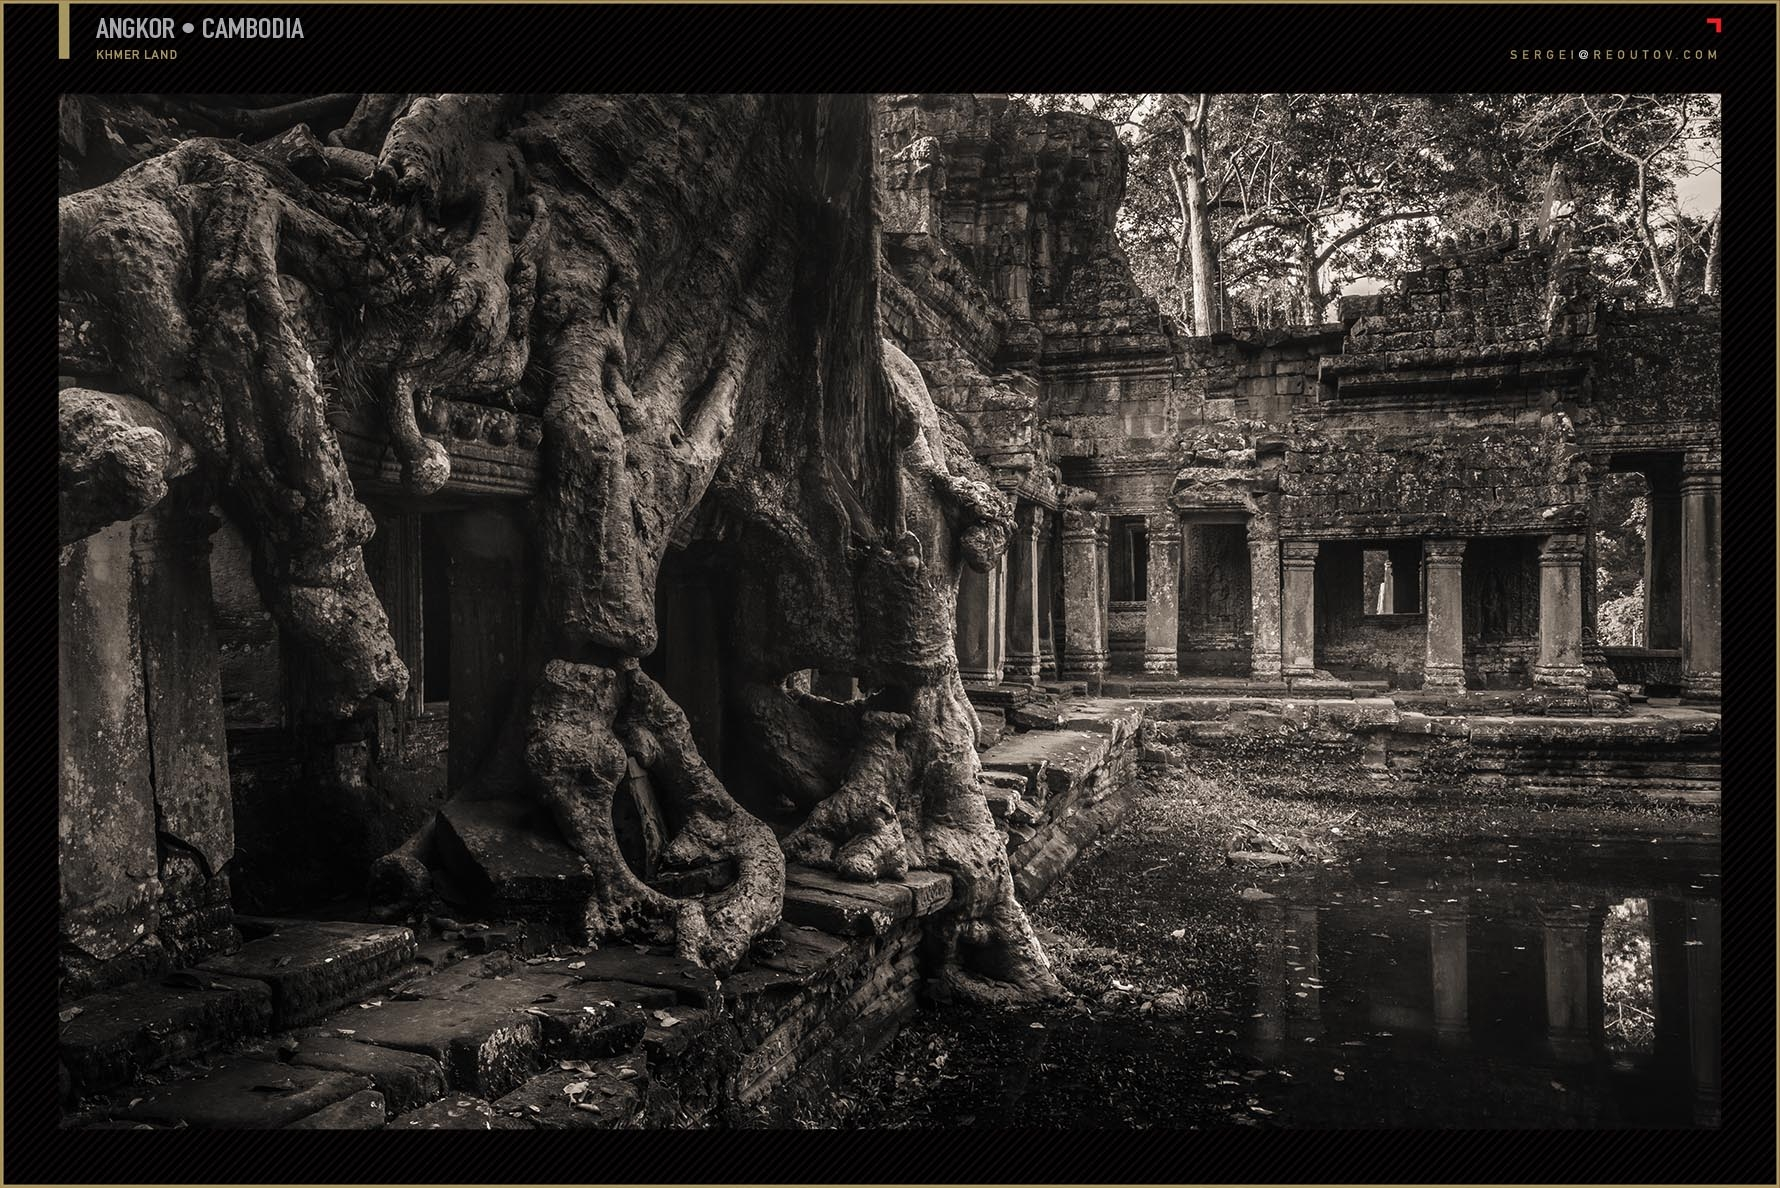 Tree roots with ruins in Cambodia